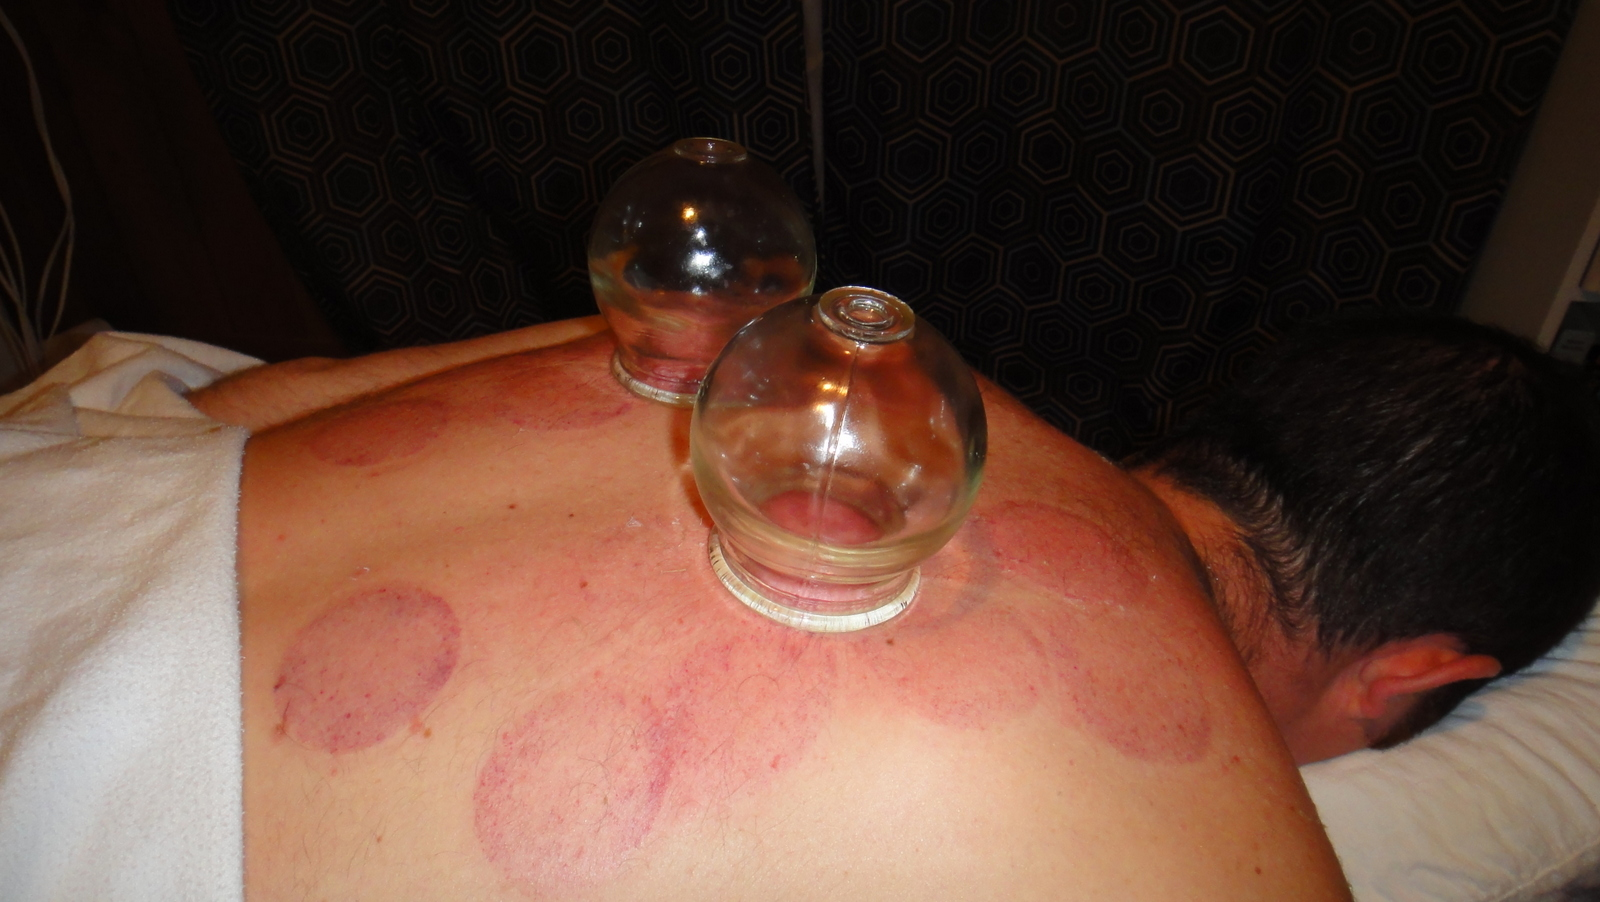 cupping back 1